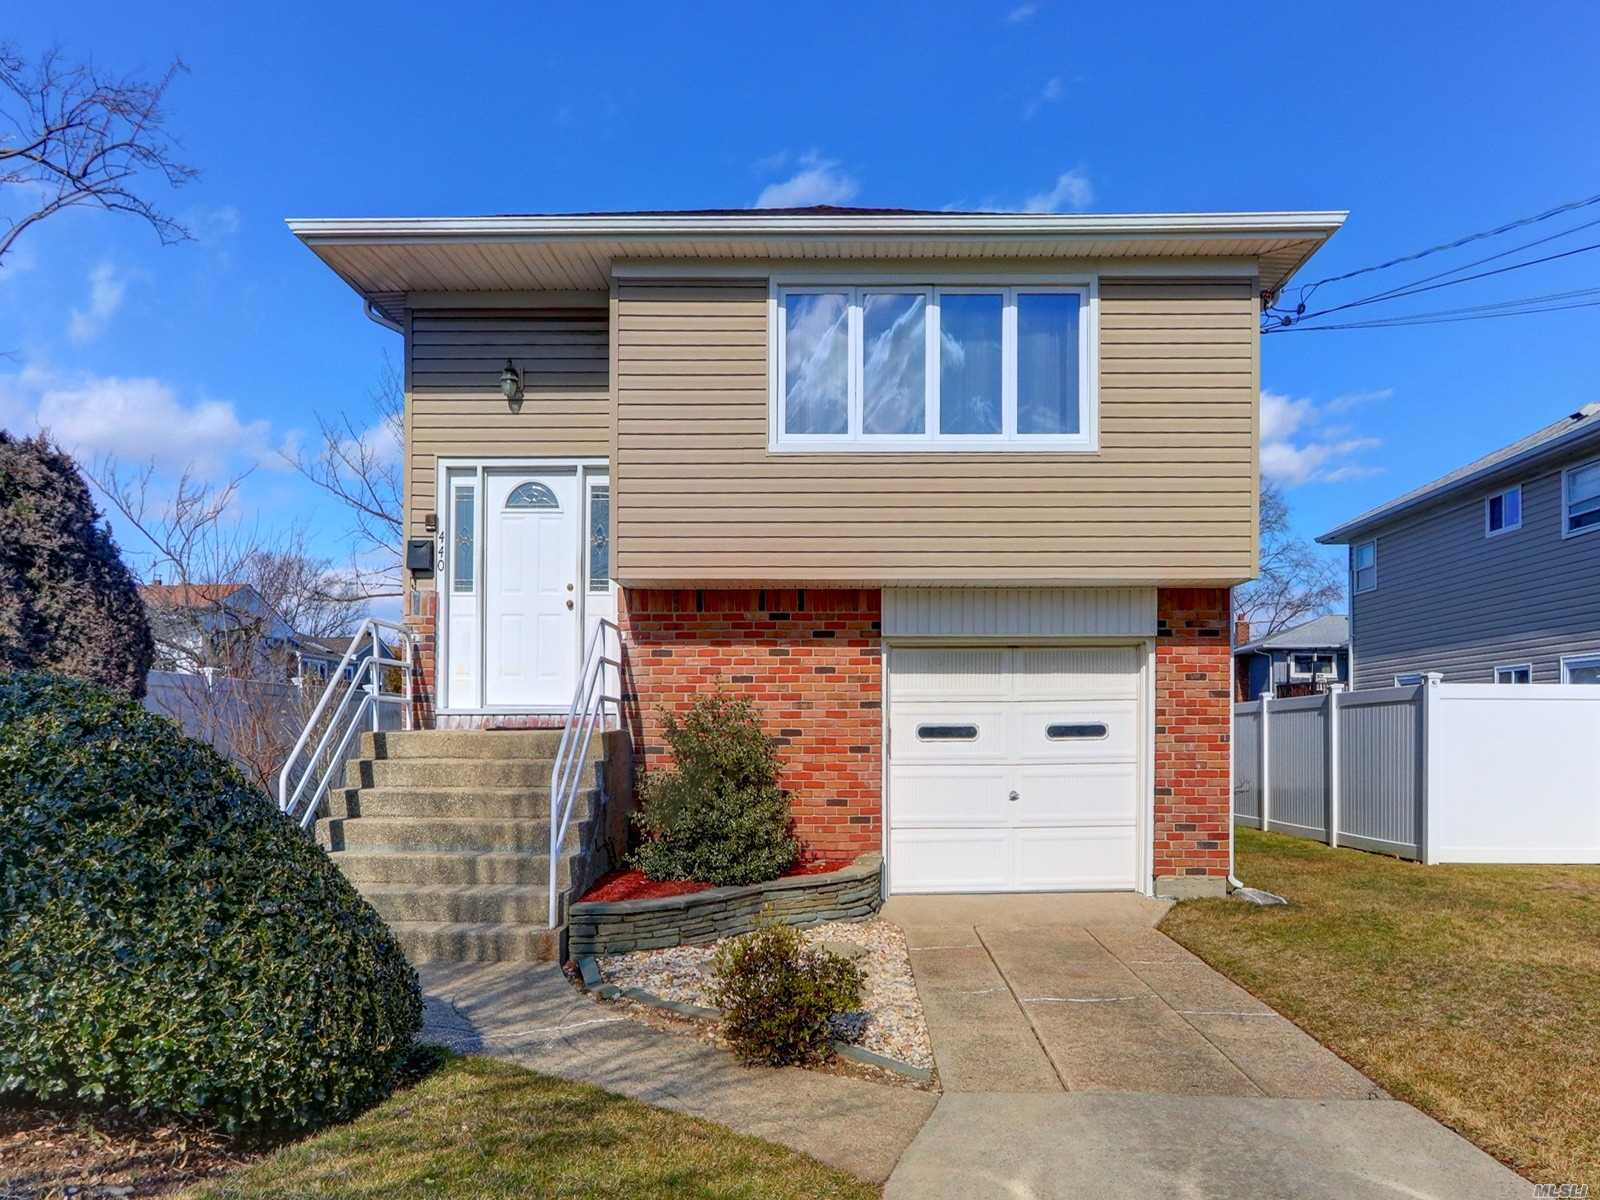 Hi Ranch In The Exclusive Ocean Harbor Development Of Oceanside On Dead End Street Just 4 Blocks To The Lirr (42 Min To Penn Station). Immaculate Home With Hardwood Floors Under All Carpeting Upstairs - Never Exposed! Great Location, Great Yard, Super Low Taxes And Low Flood Insurance. Amazing School District And Just 5 Miles To The Beach!